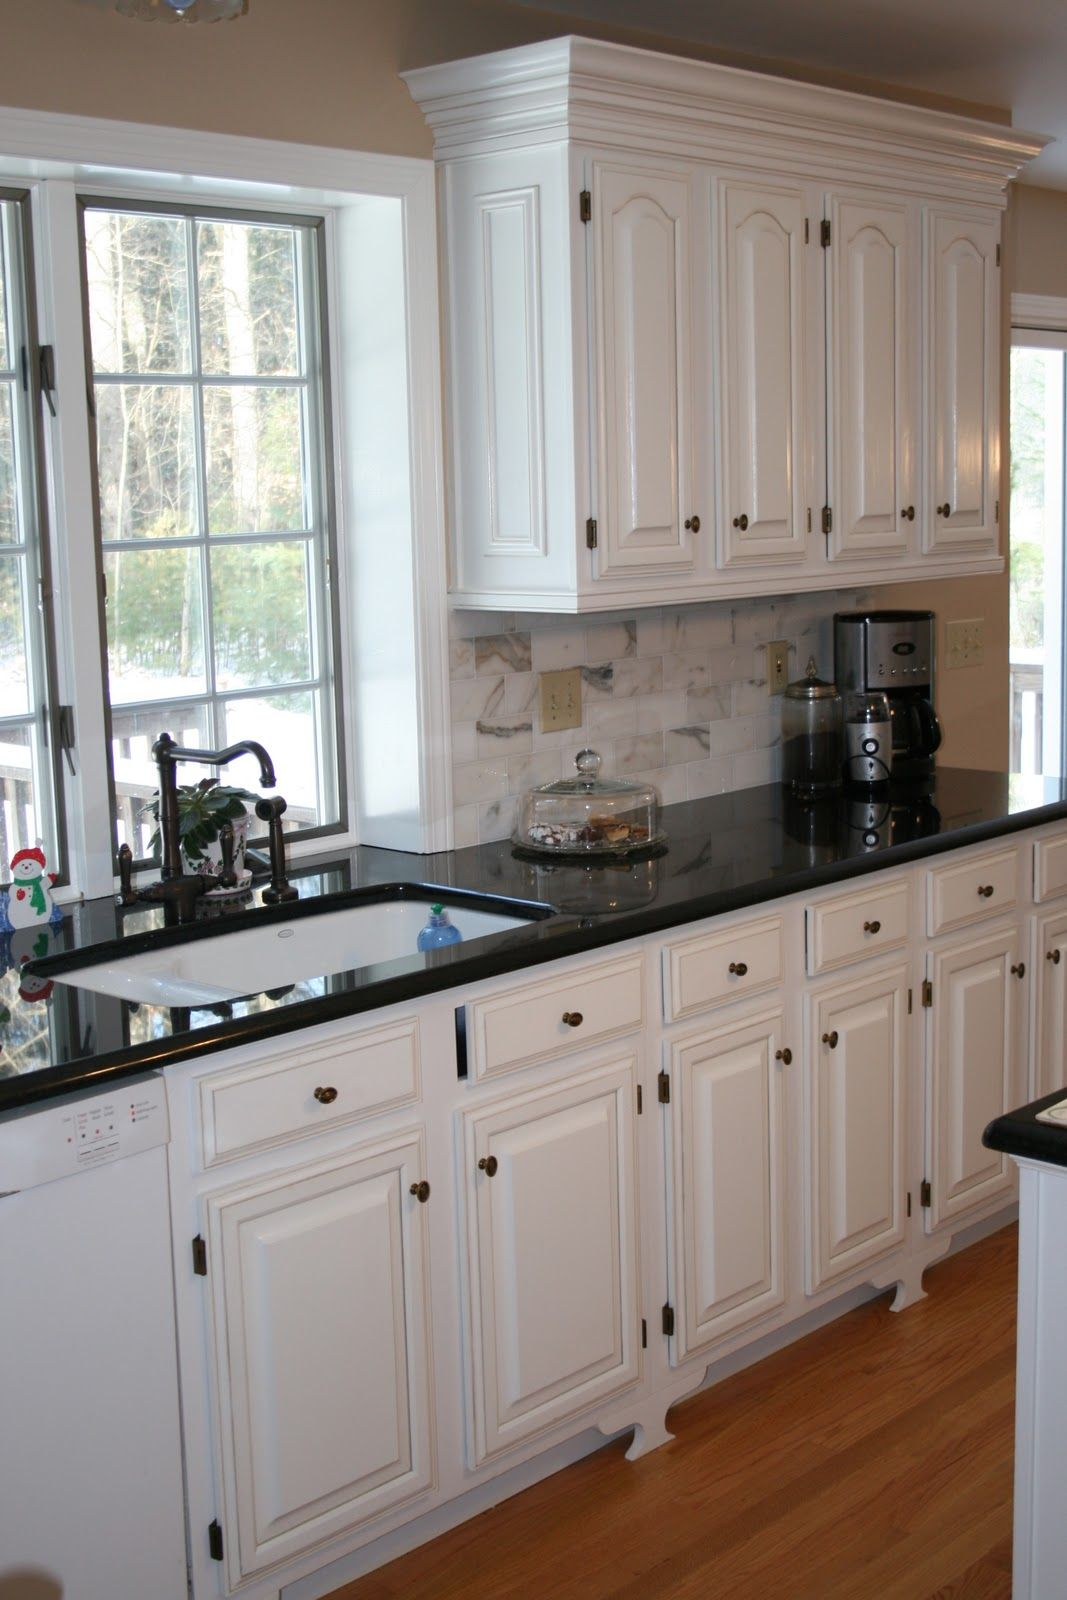 Delicieux White Cabinets Black Countertops And That Faucet